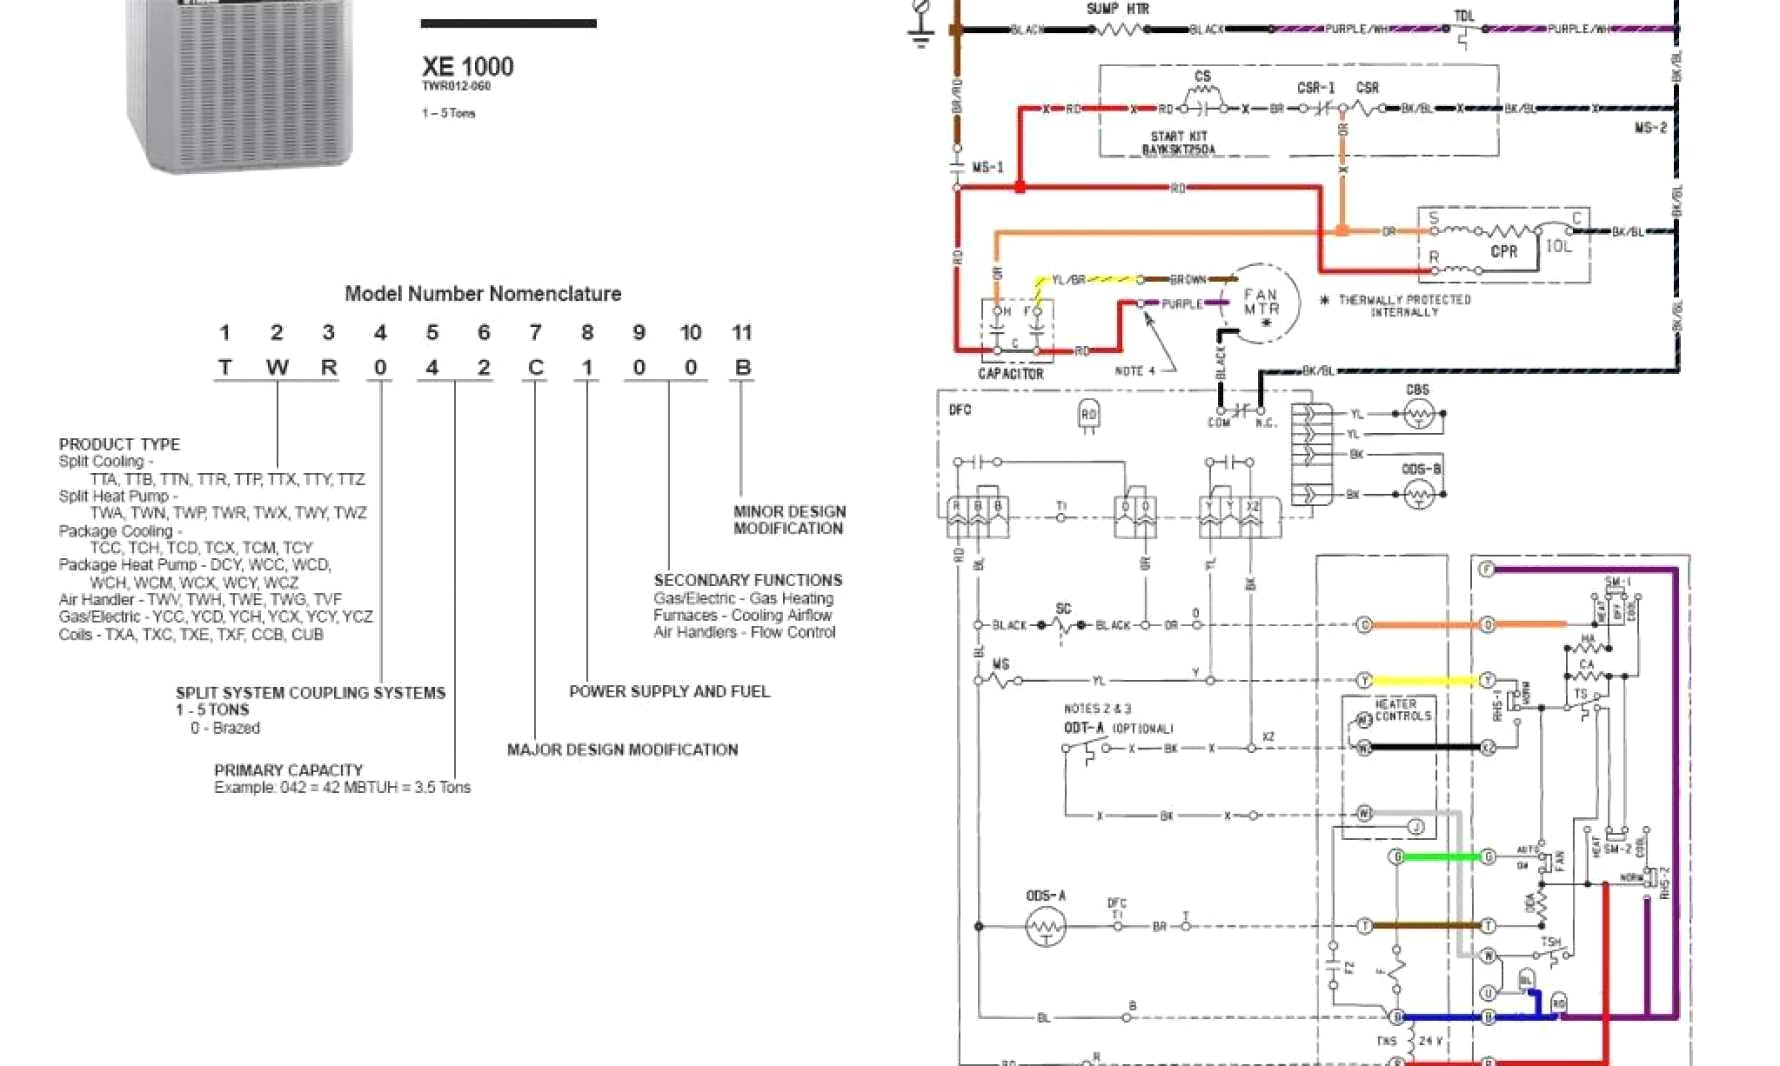 trane thermostat wiring diagram Collection-Trane thermostat Wiring Diagram  New Wiring Diagram for Trane thermostat